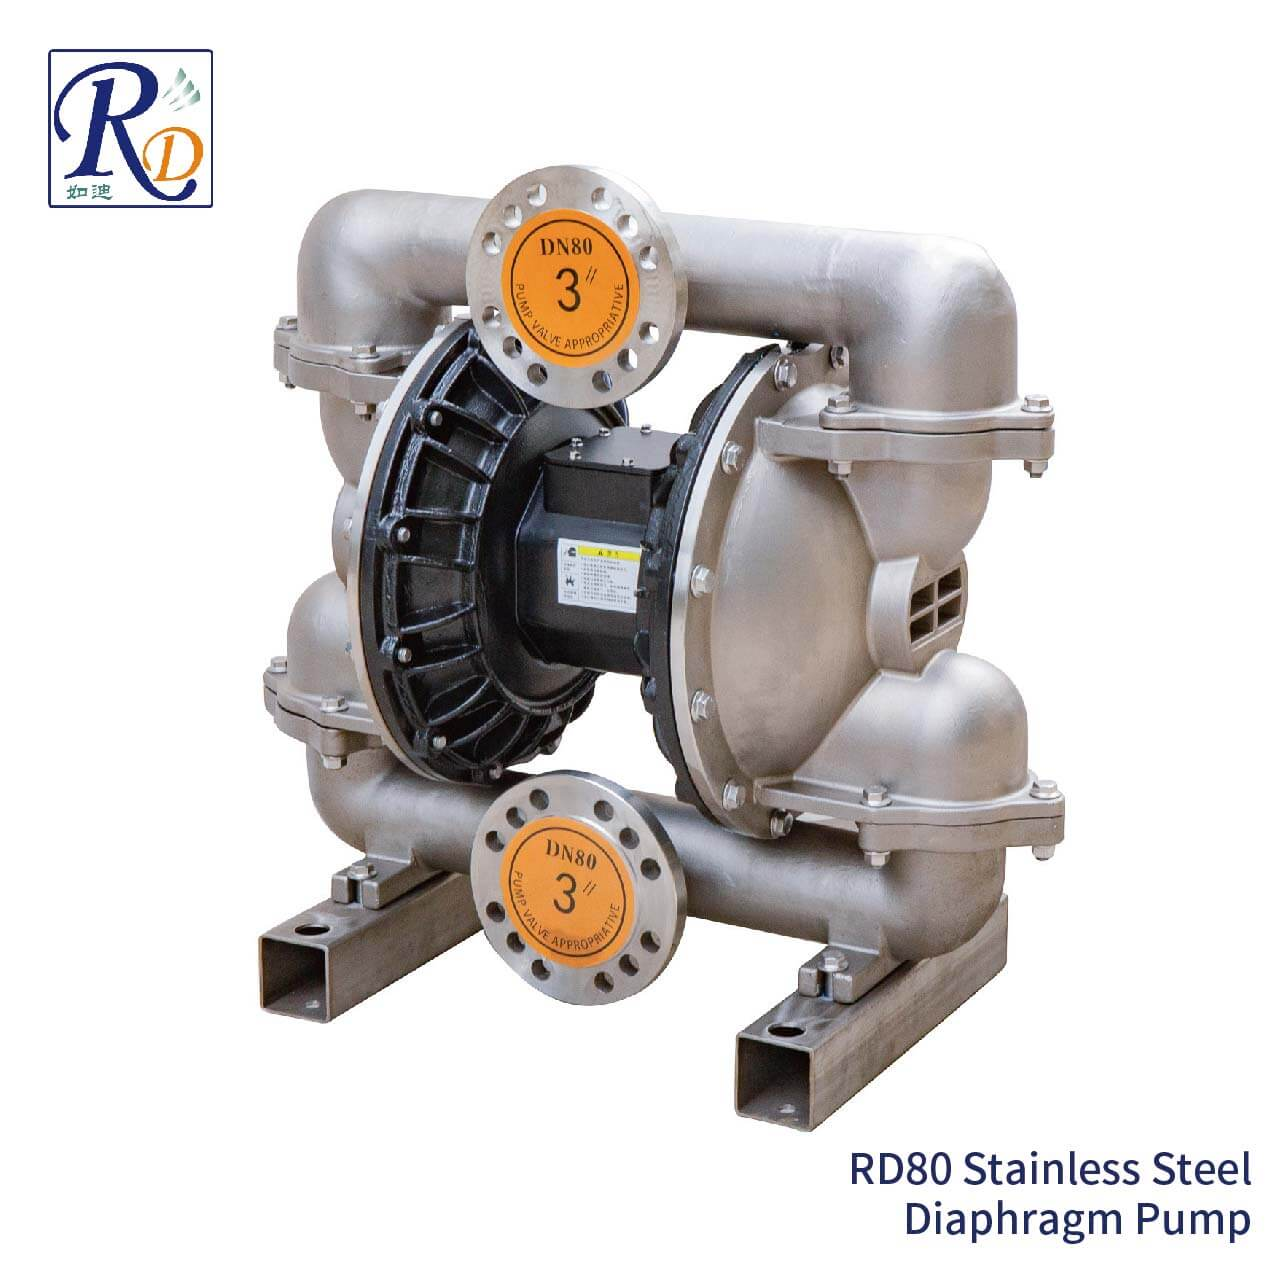 RD80 Stainless Steel Diaphragm Pump